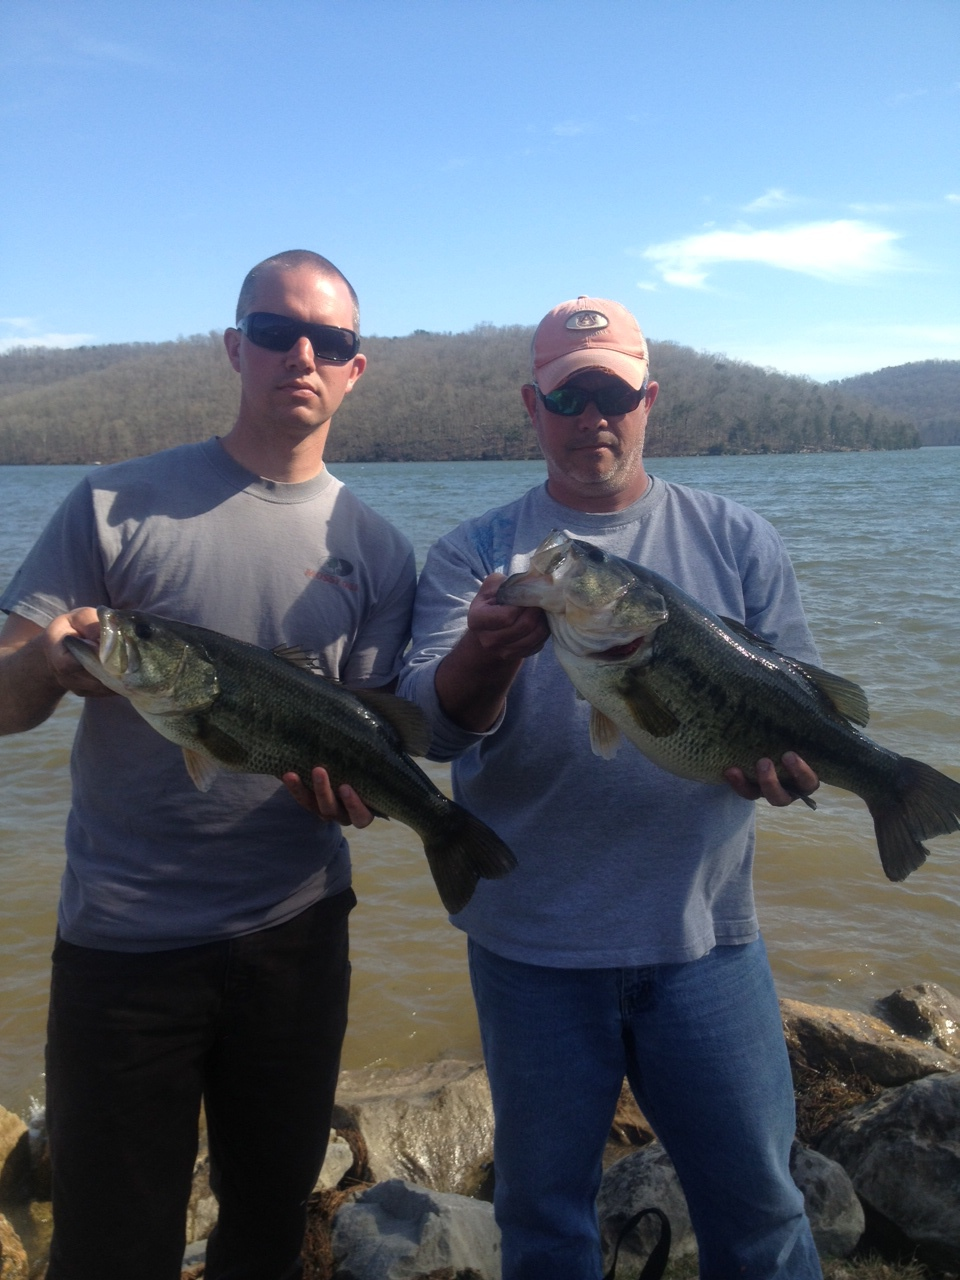 9 lbs Bass +1 -- caught by Jason Nielsen on lake guntersville